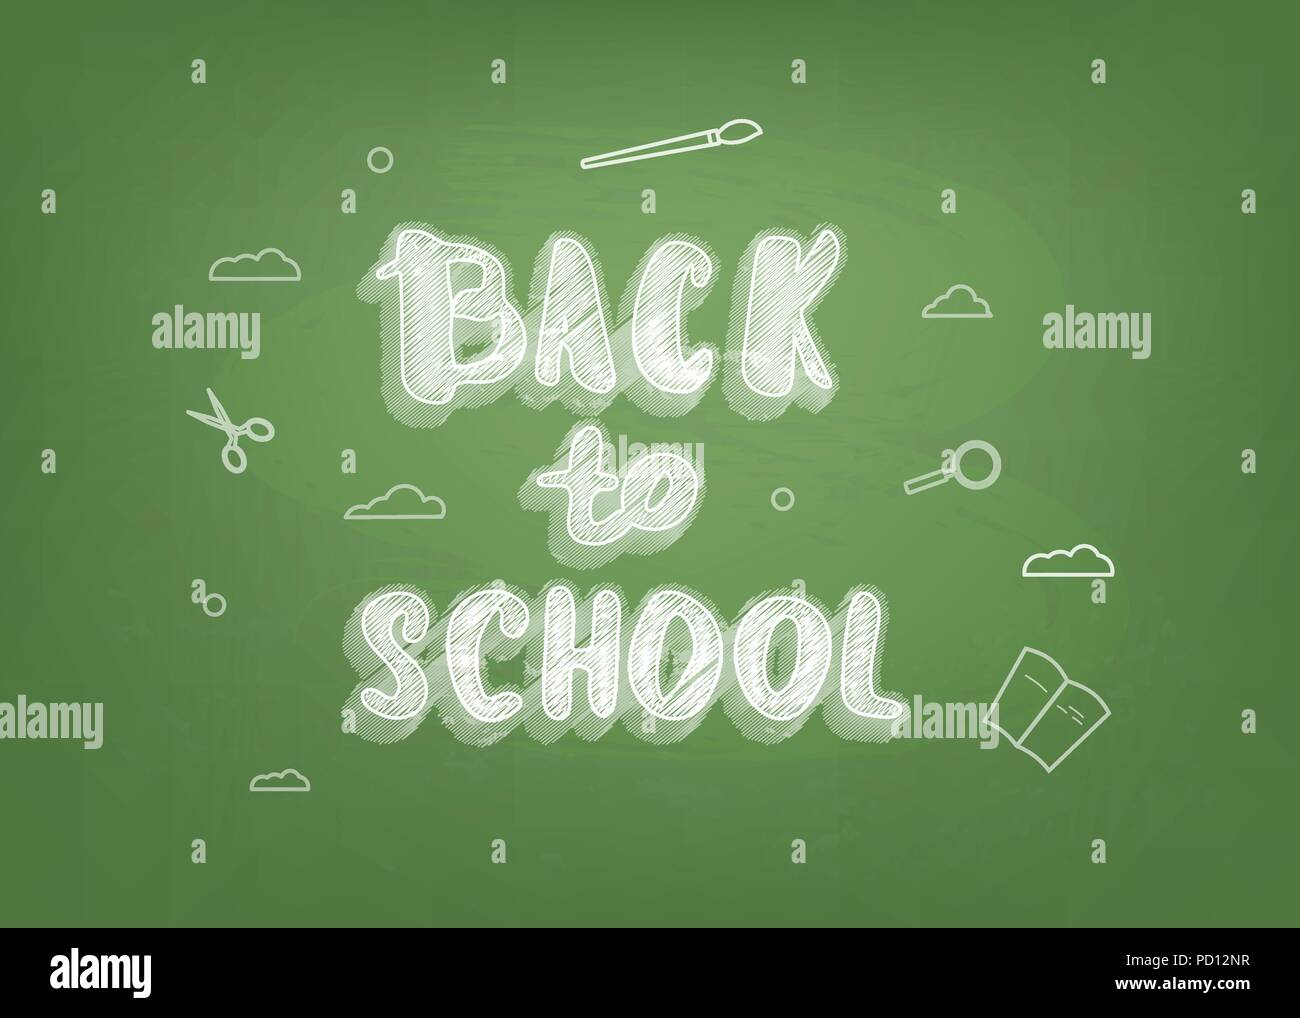 Back To School Chalk Lettering On Green Chalkboard Template For Season Promotion Cards Education Banner With Decoration Vector Illustration